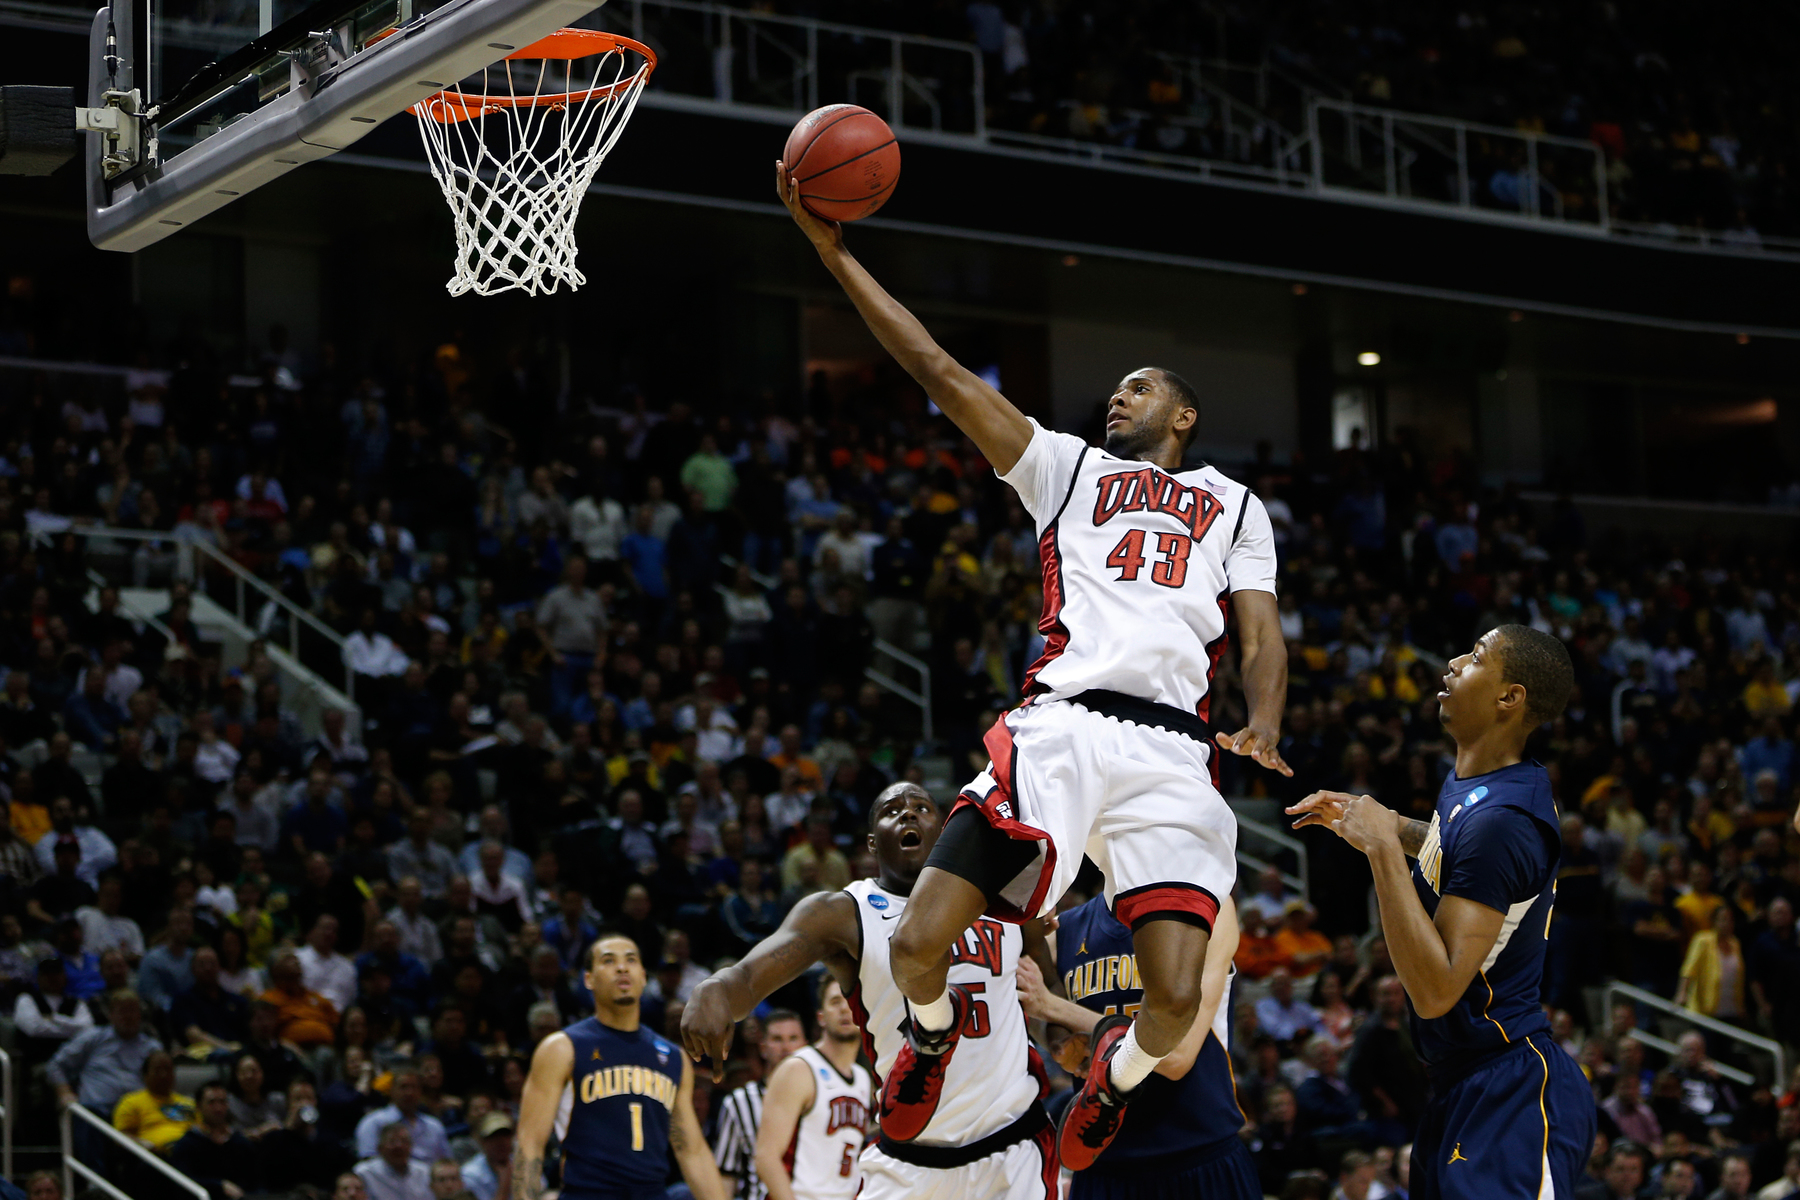 UNLV Rebels forward Mike Moser (43) goes for a layout during the second-round game of his NCAA college basketball tournament against California Golden Bears at HP Pavilion in San Jose, Calif. on Thursday, March 21, 2013.